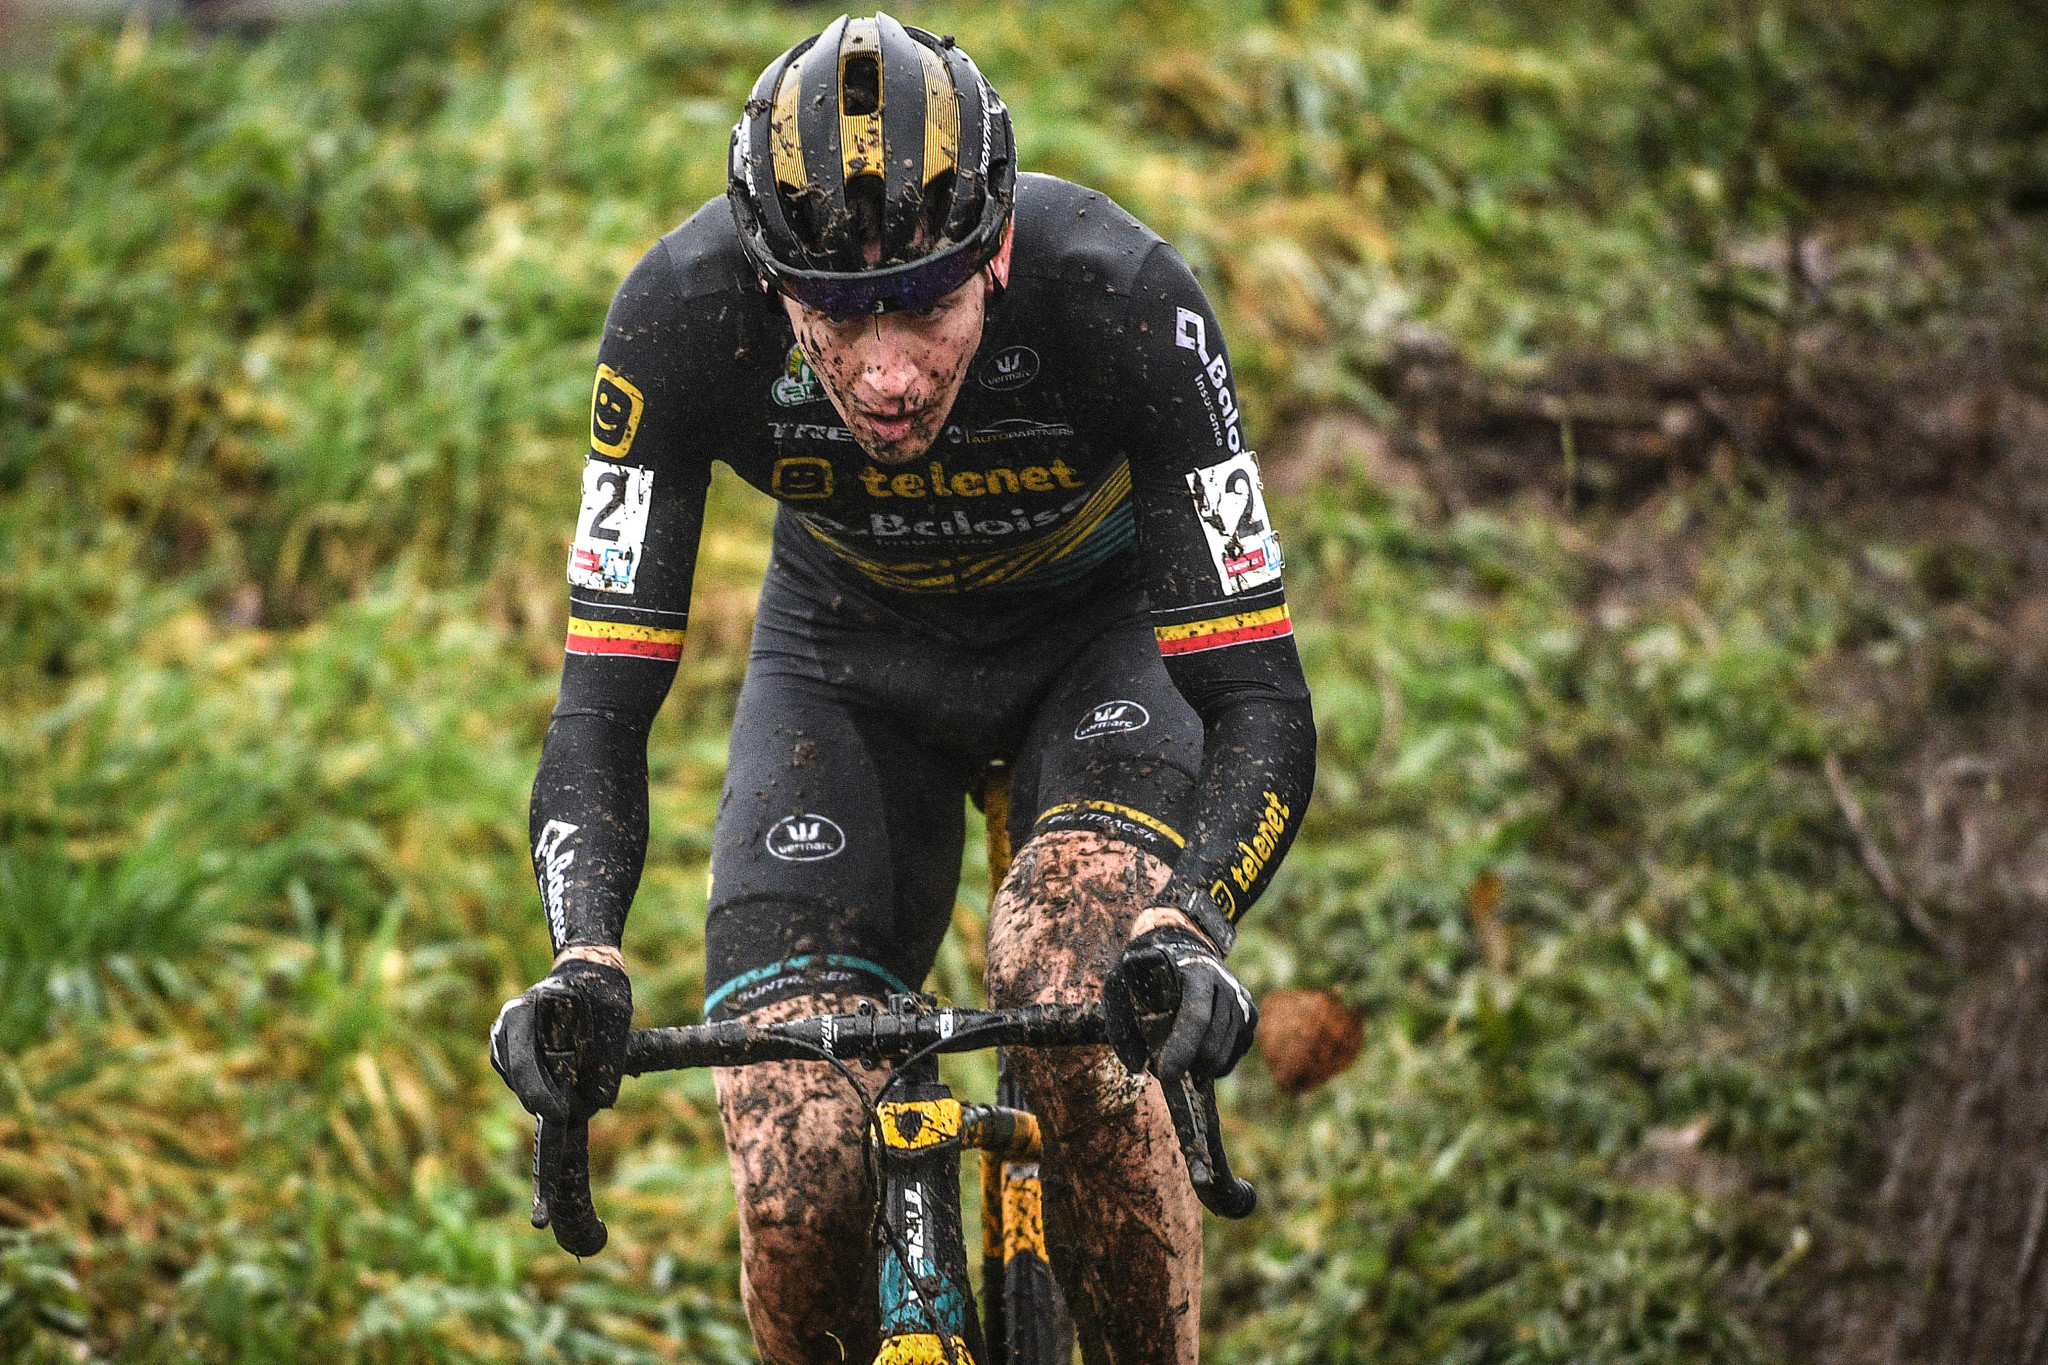 Nommay Pays de Montbeliard hosting penultimate event of UCI Cyclo-cross World Cup season